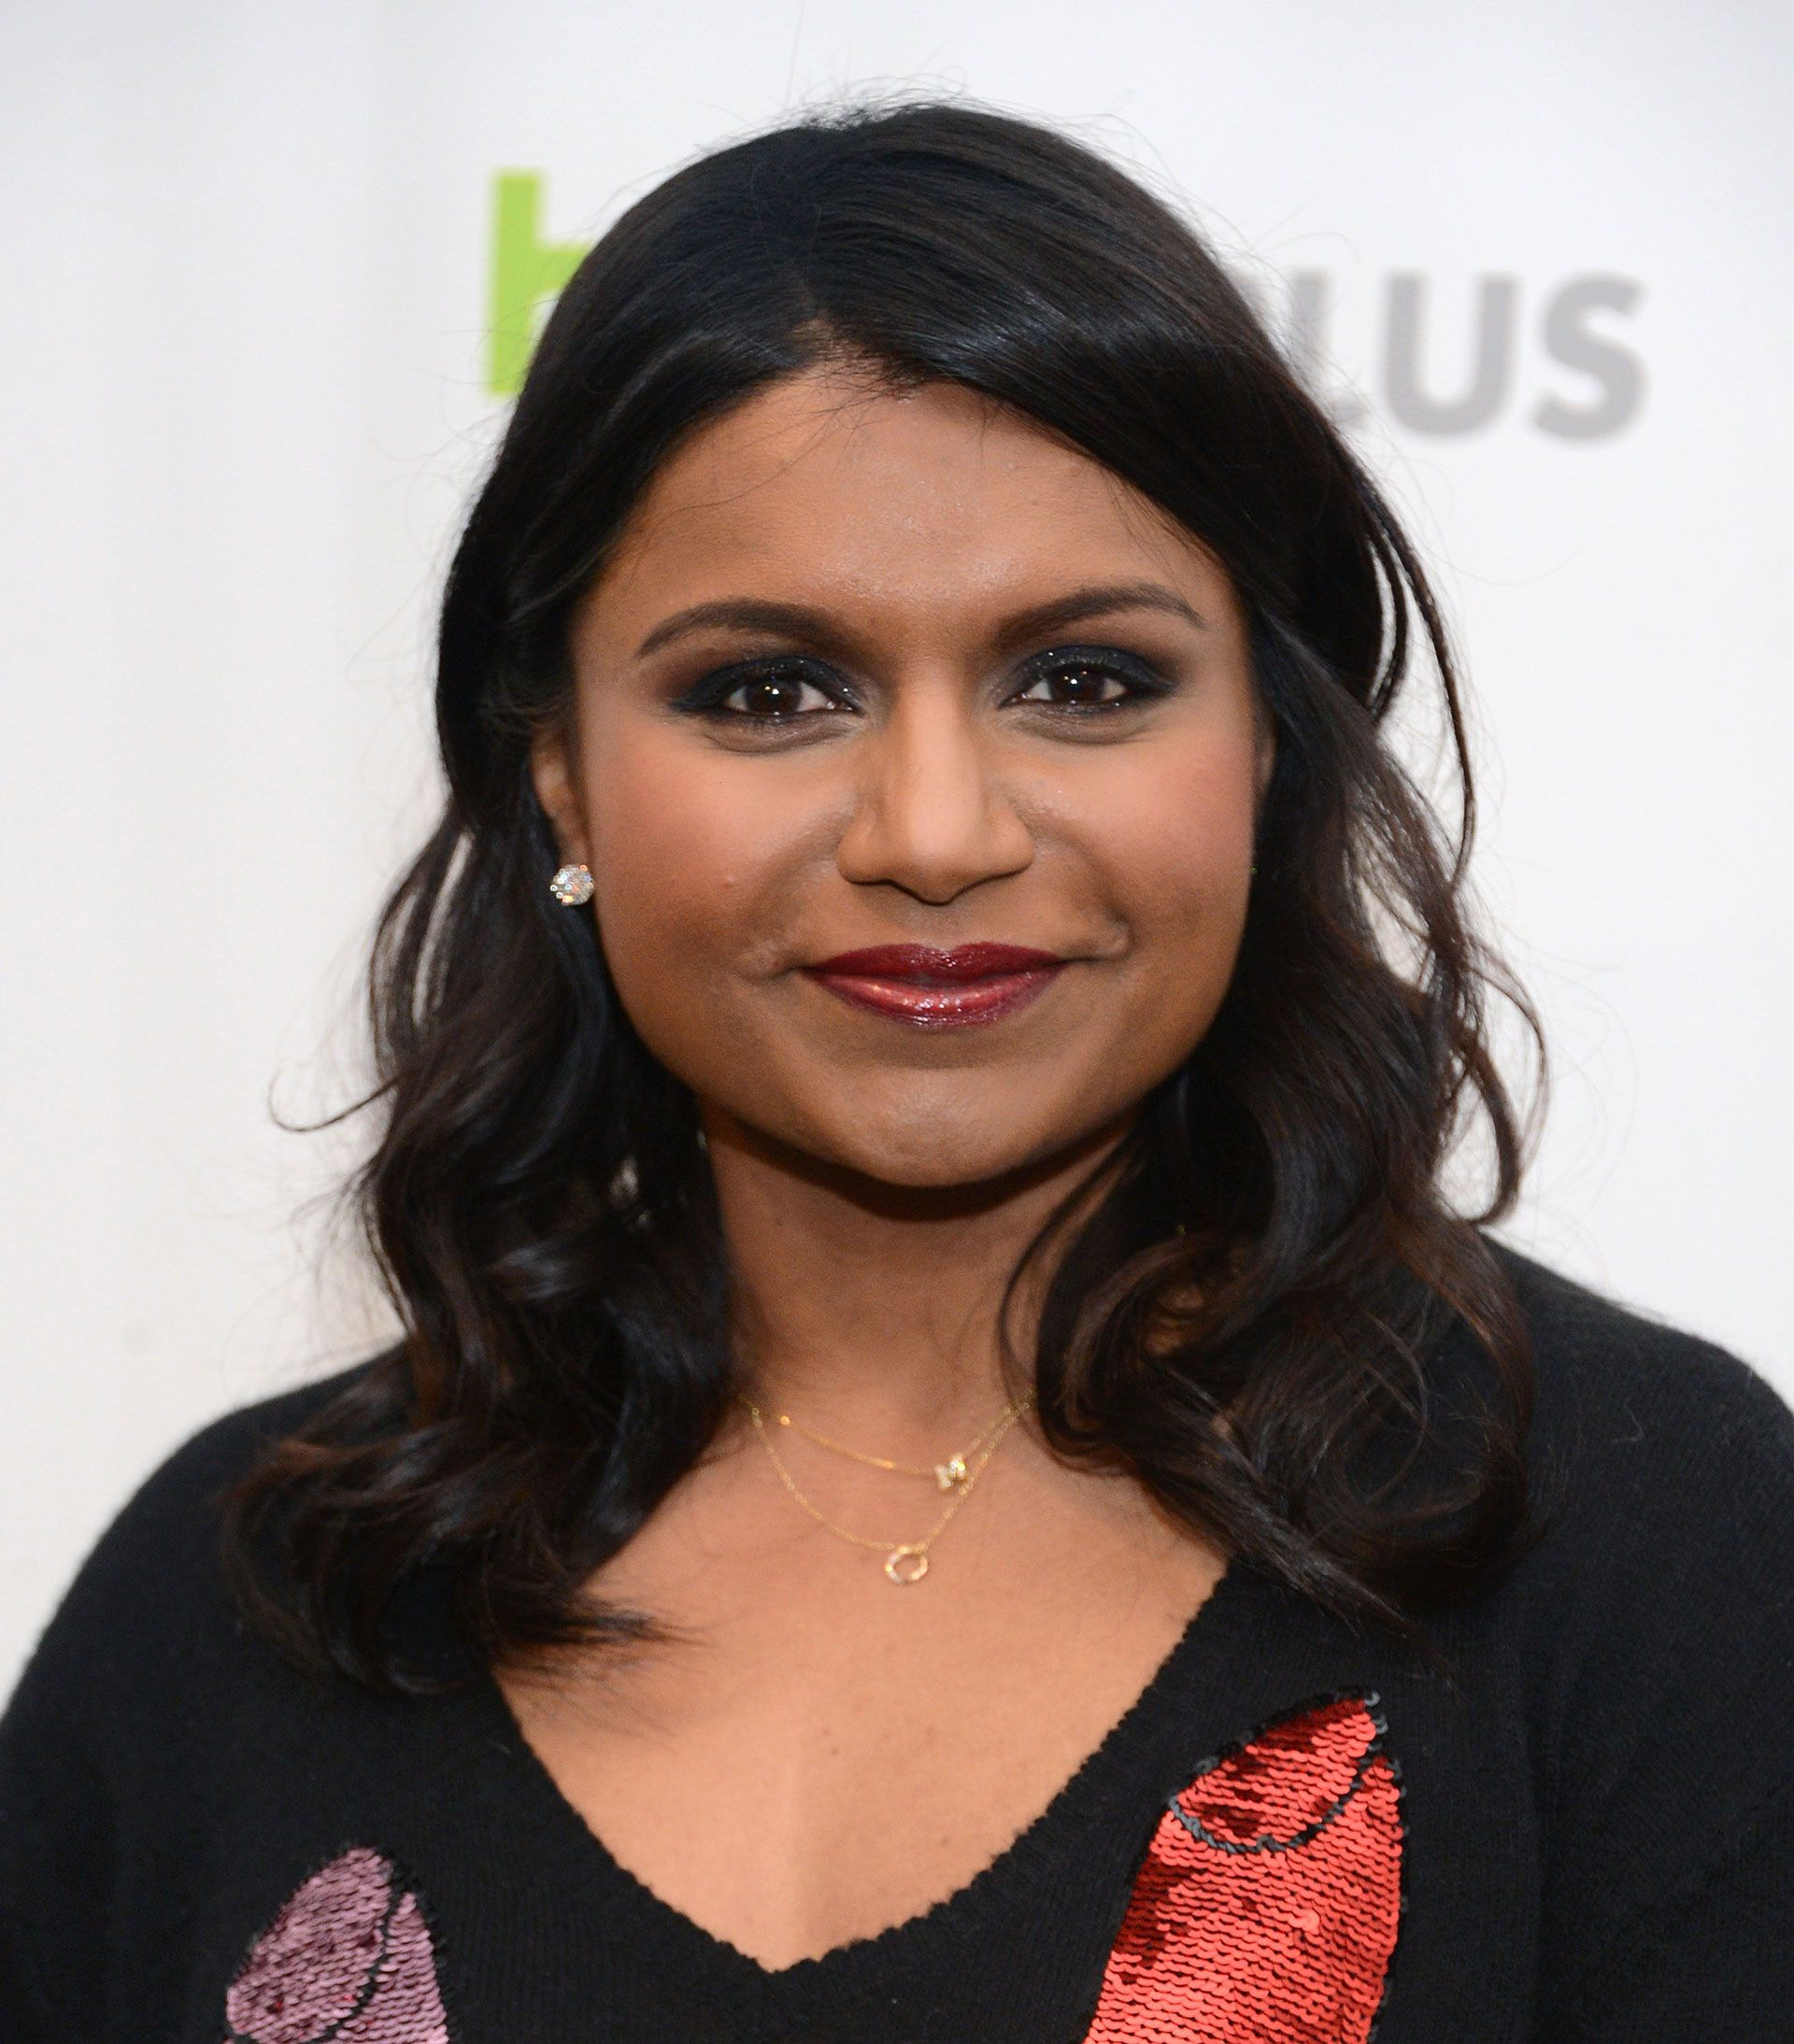 Mindy Kaling Interview On Happiness Gretchen Rubin Interviews Mindy Kaling